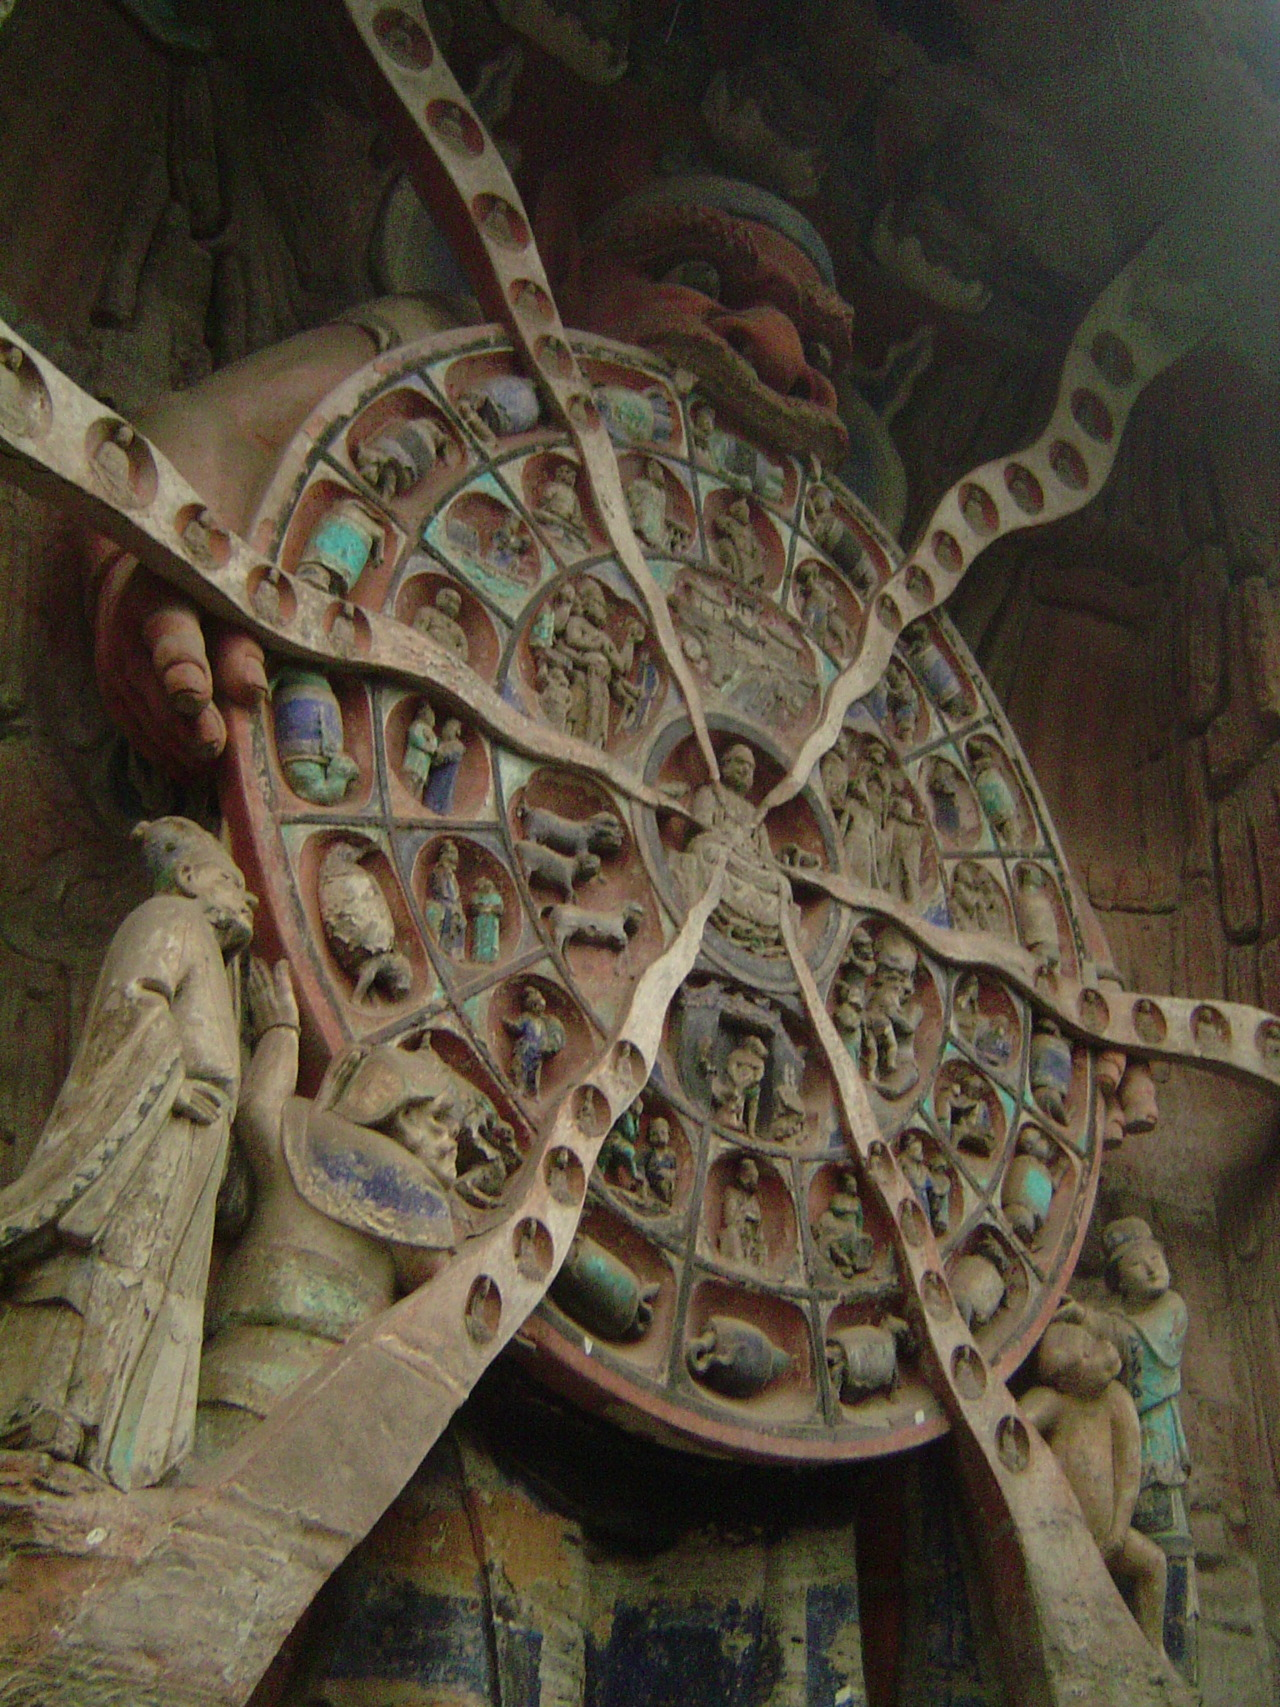 In this 8-meter tall Buddhist relief from the   Dazu Rock Carvings   in China, built sometime between the years 1177 and 1249,   Mara  , Lord of Death and Desire, clutches the Wheel of Reincarnation, which outlines the Buddhist cycle of reincarnation.